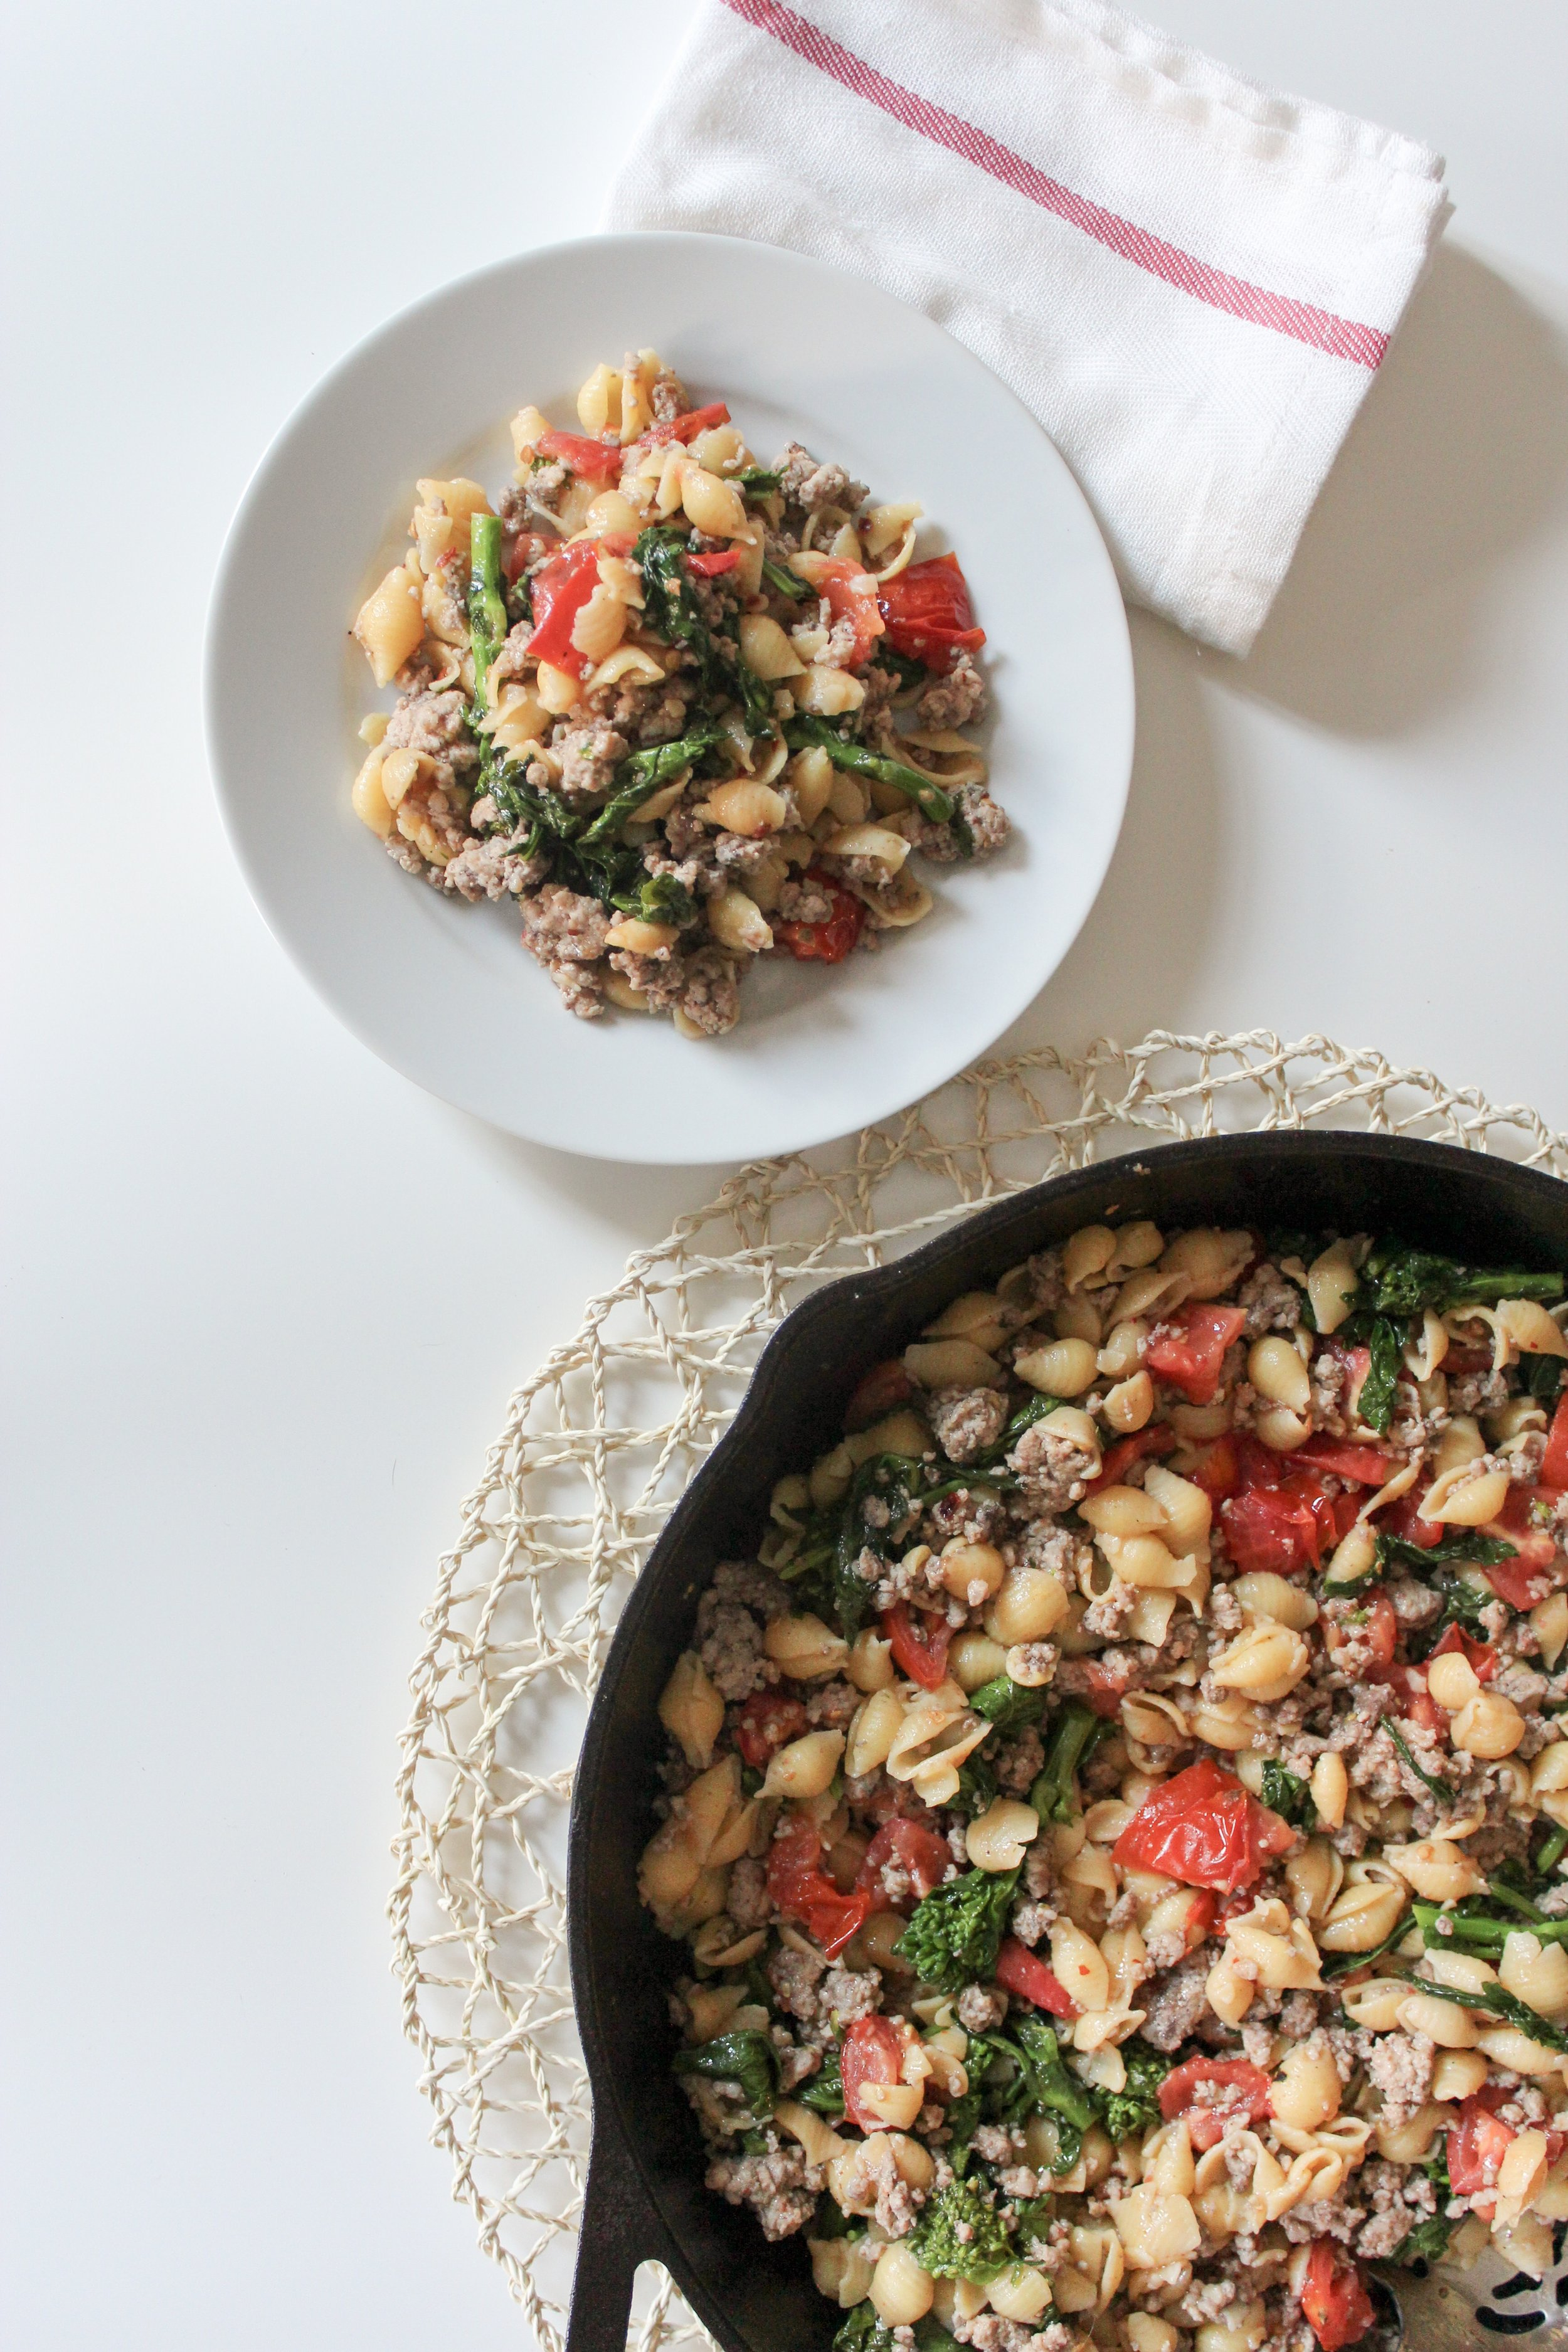 Fresh broccoli rabe and sweet tomatoes add color and flavor to this pork pasta dish.